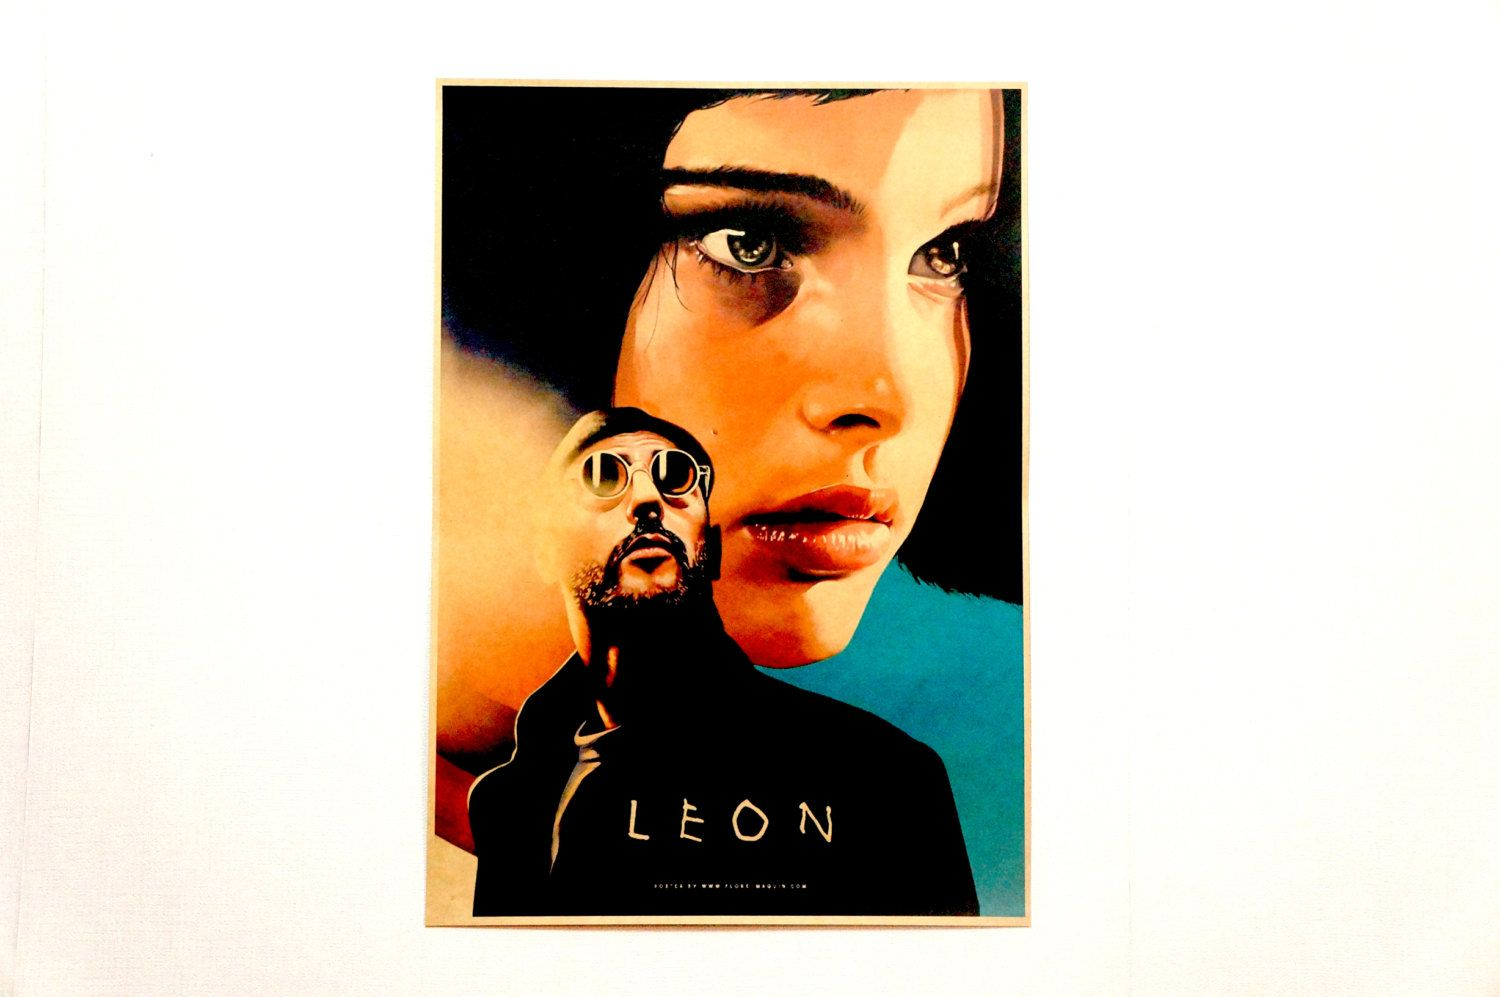 Cult actors. Leon - Aesthetic gangster drama from Luc Besson 54